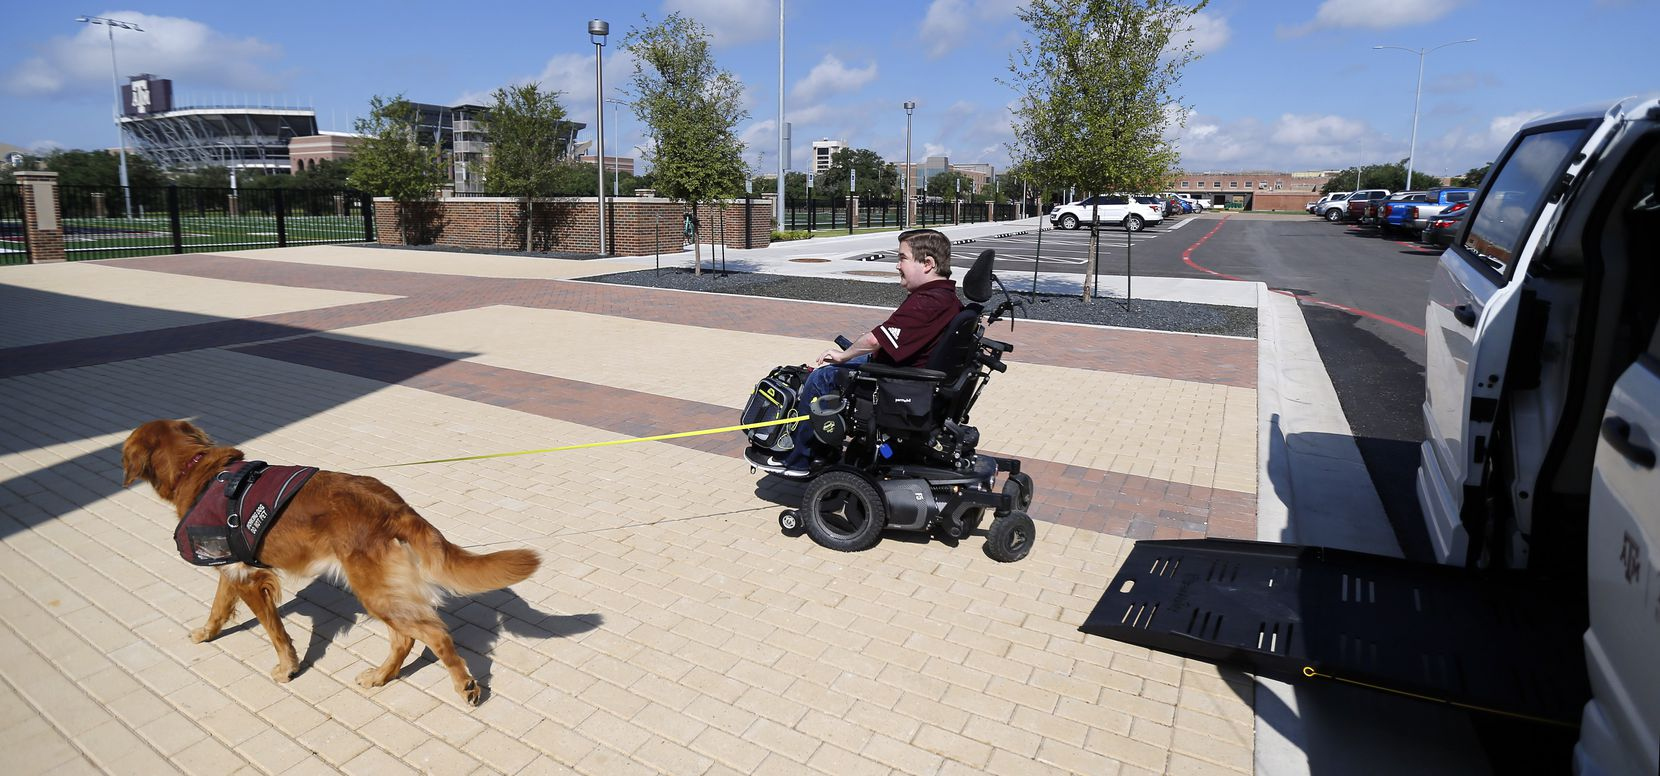 Texas A&M graduate student Kyle Cox, who has Duchenne Muscular Dystrophy, and his golden retriever service dog, Amber, head to symphonic band rehearsal at the new Music Activities Center on the Texas A&M campus in College Station, Texas, Wednesday, September 11, 2019. Kyle receives a ride to classes in a specially equipped university van.